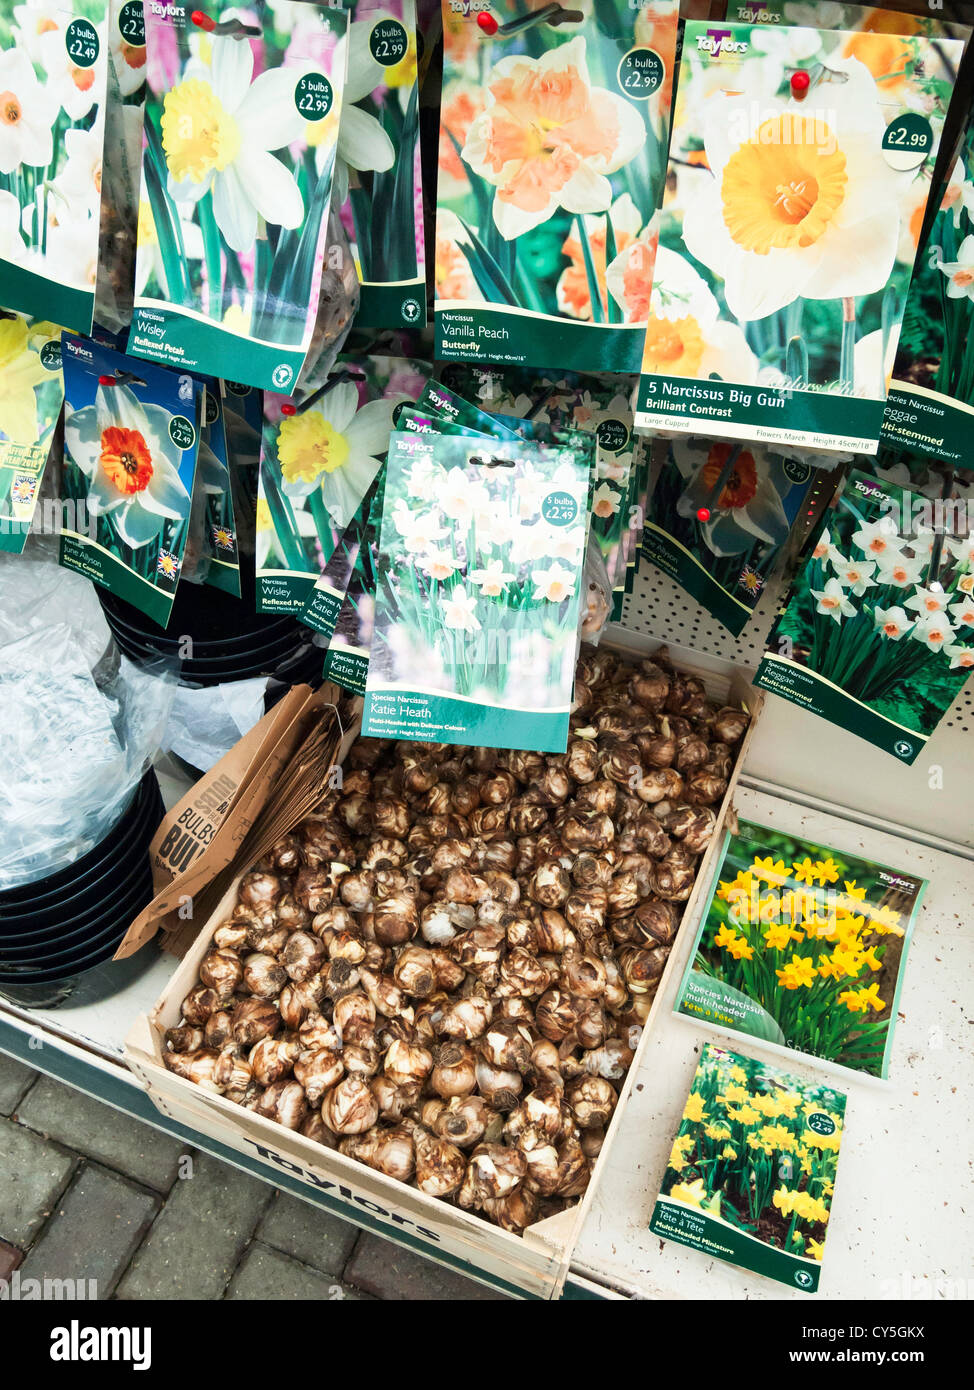 Packaged daffodil and narcissus flower bulbs for sale in autumn in a packaged daffodil and narcissus flower bulbs for sale in autumn in a garden centre planted in autumn they flower in spring mightylinksfo